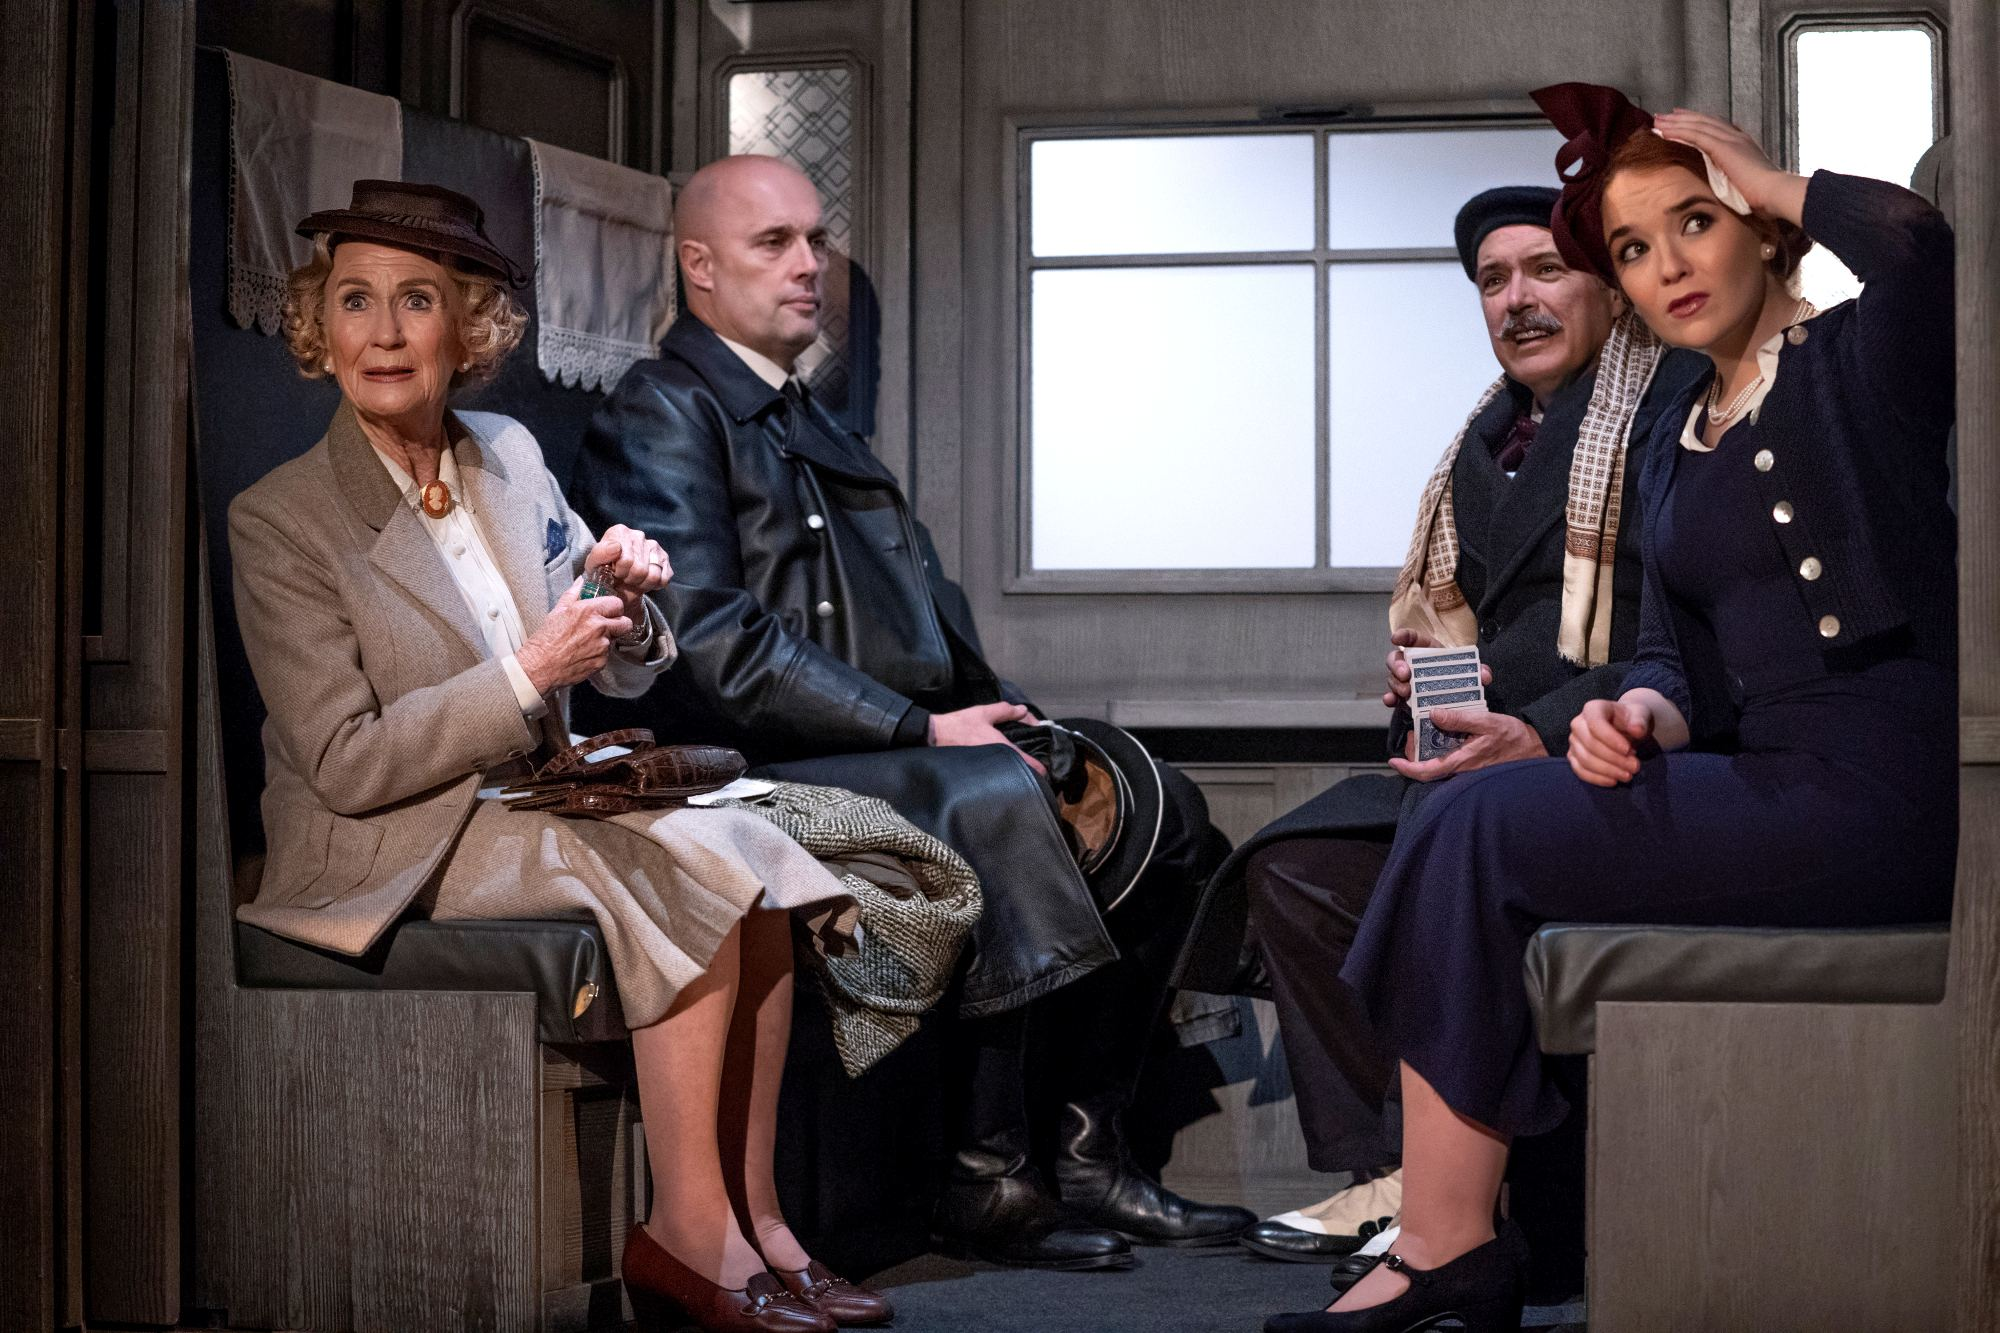 Scene from The Classic Thriller Theatre Company's 2019 production of The Lady Vanishes.  Features Juliet Mills as Miss Froy